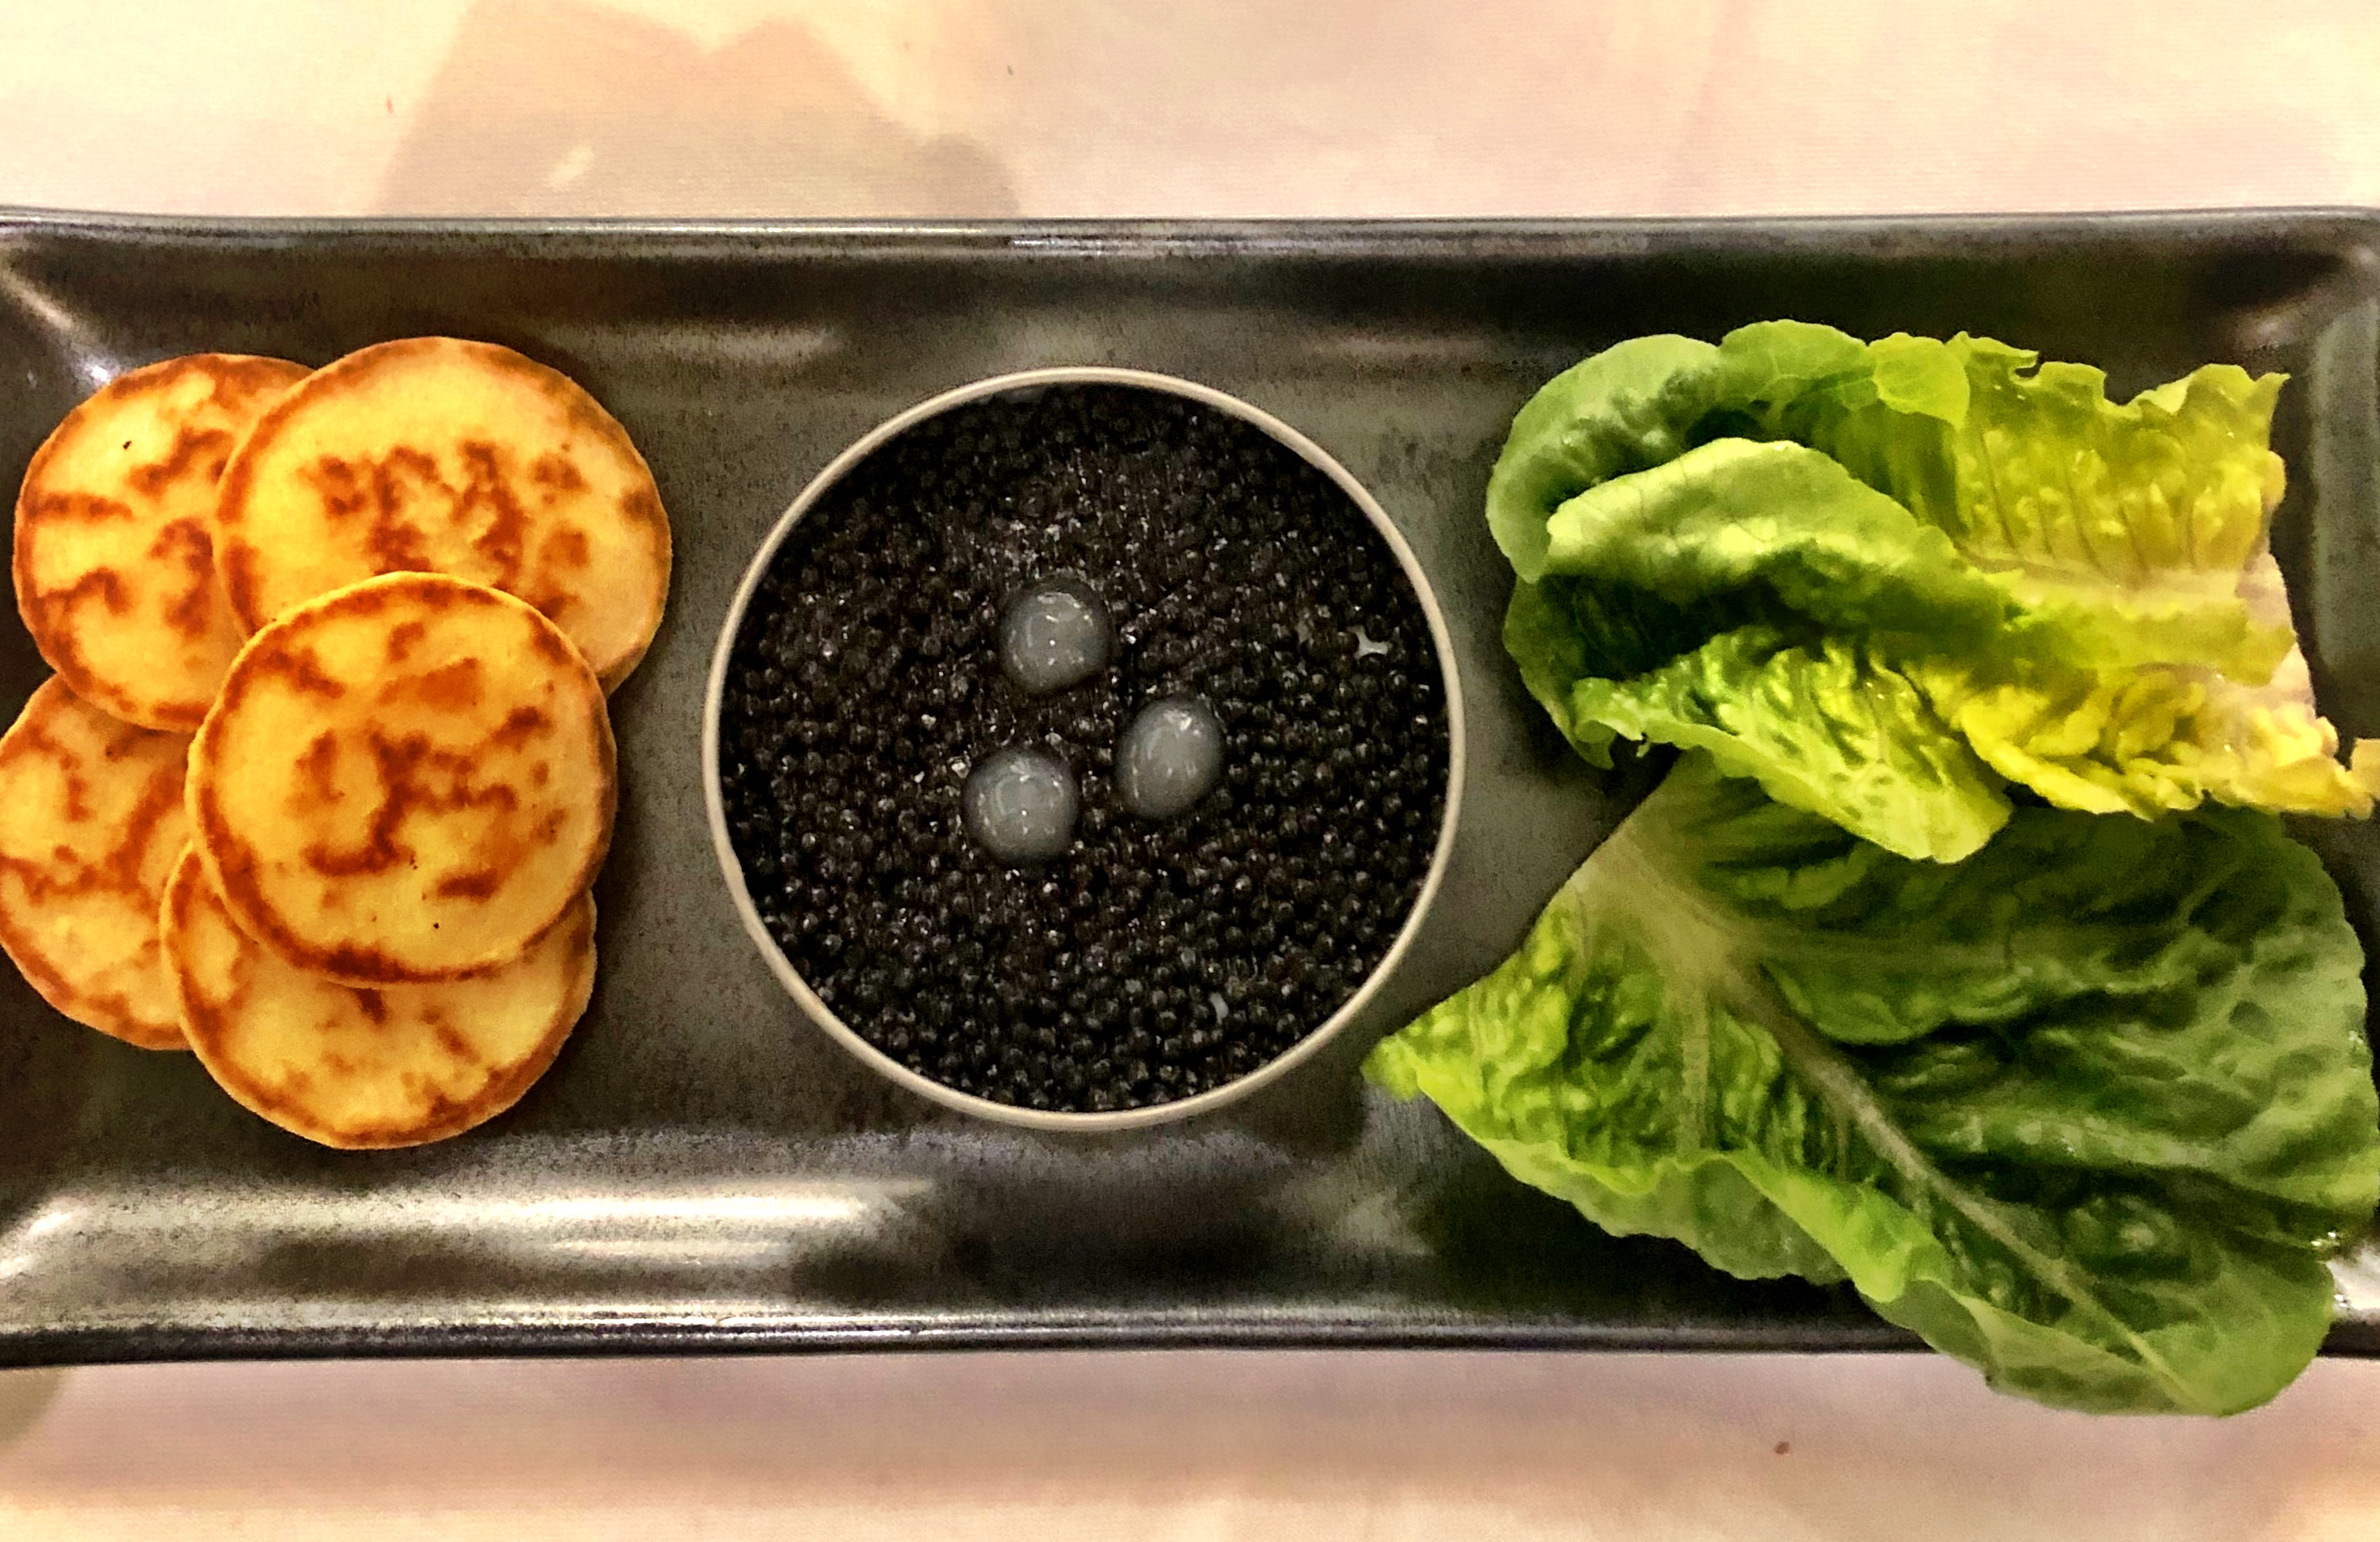 Seafood Heaven at Kaspar's at the Savoy: Cornish Crab Starter with Avruga Caviar and Blinis